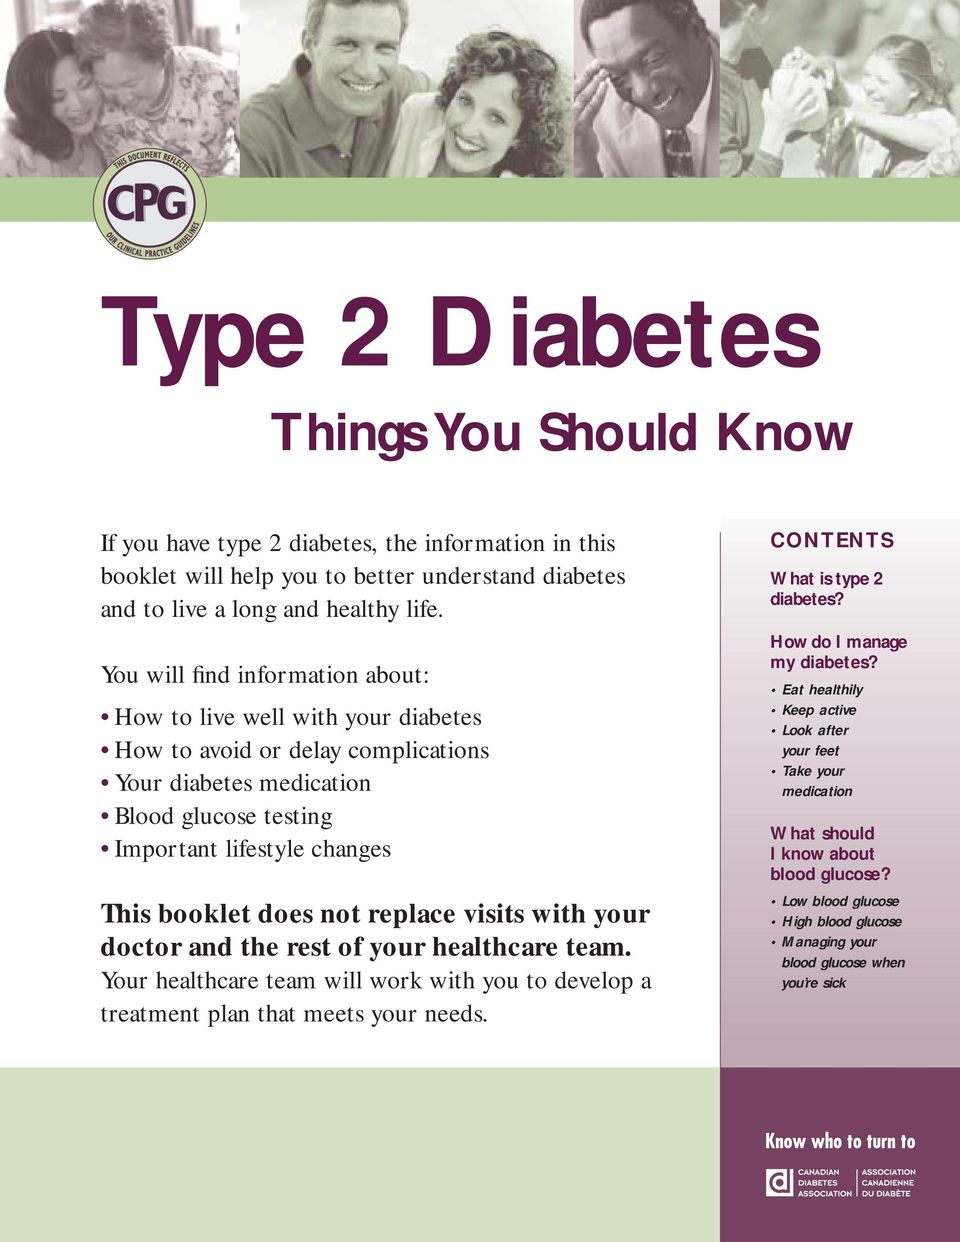 not replace visits with your doctor and the rest of your healthcare team. Your healthcare team will work with you to develop a treatment plan that meets your needs. CONTENTS What is type 2 diabetes?